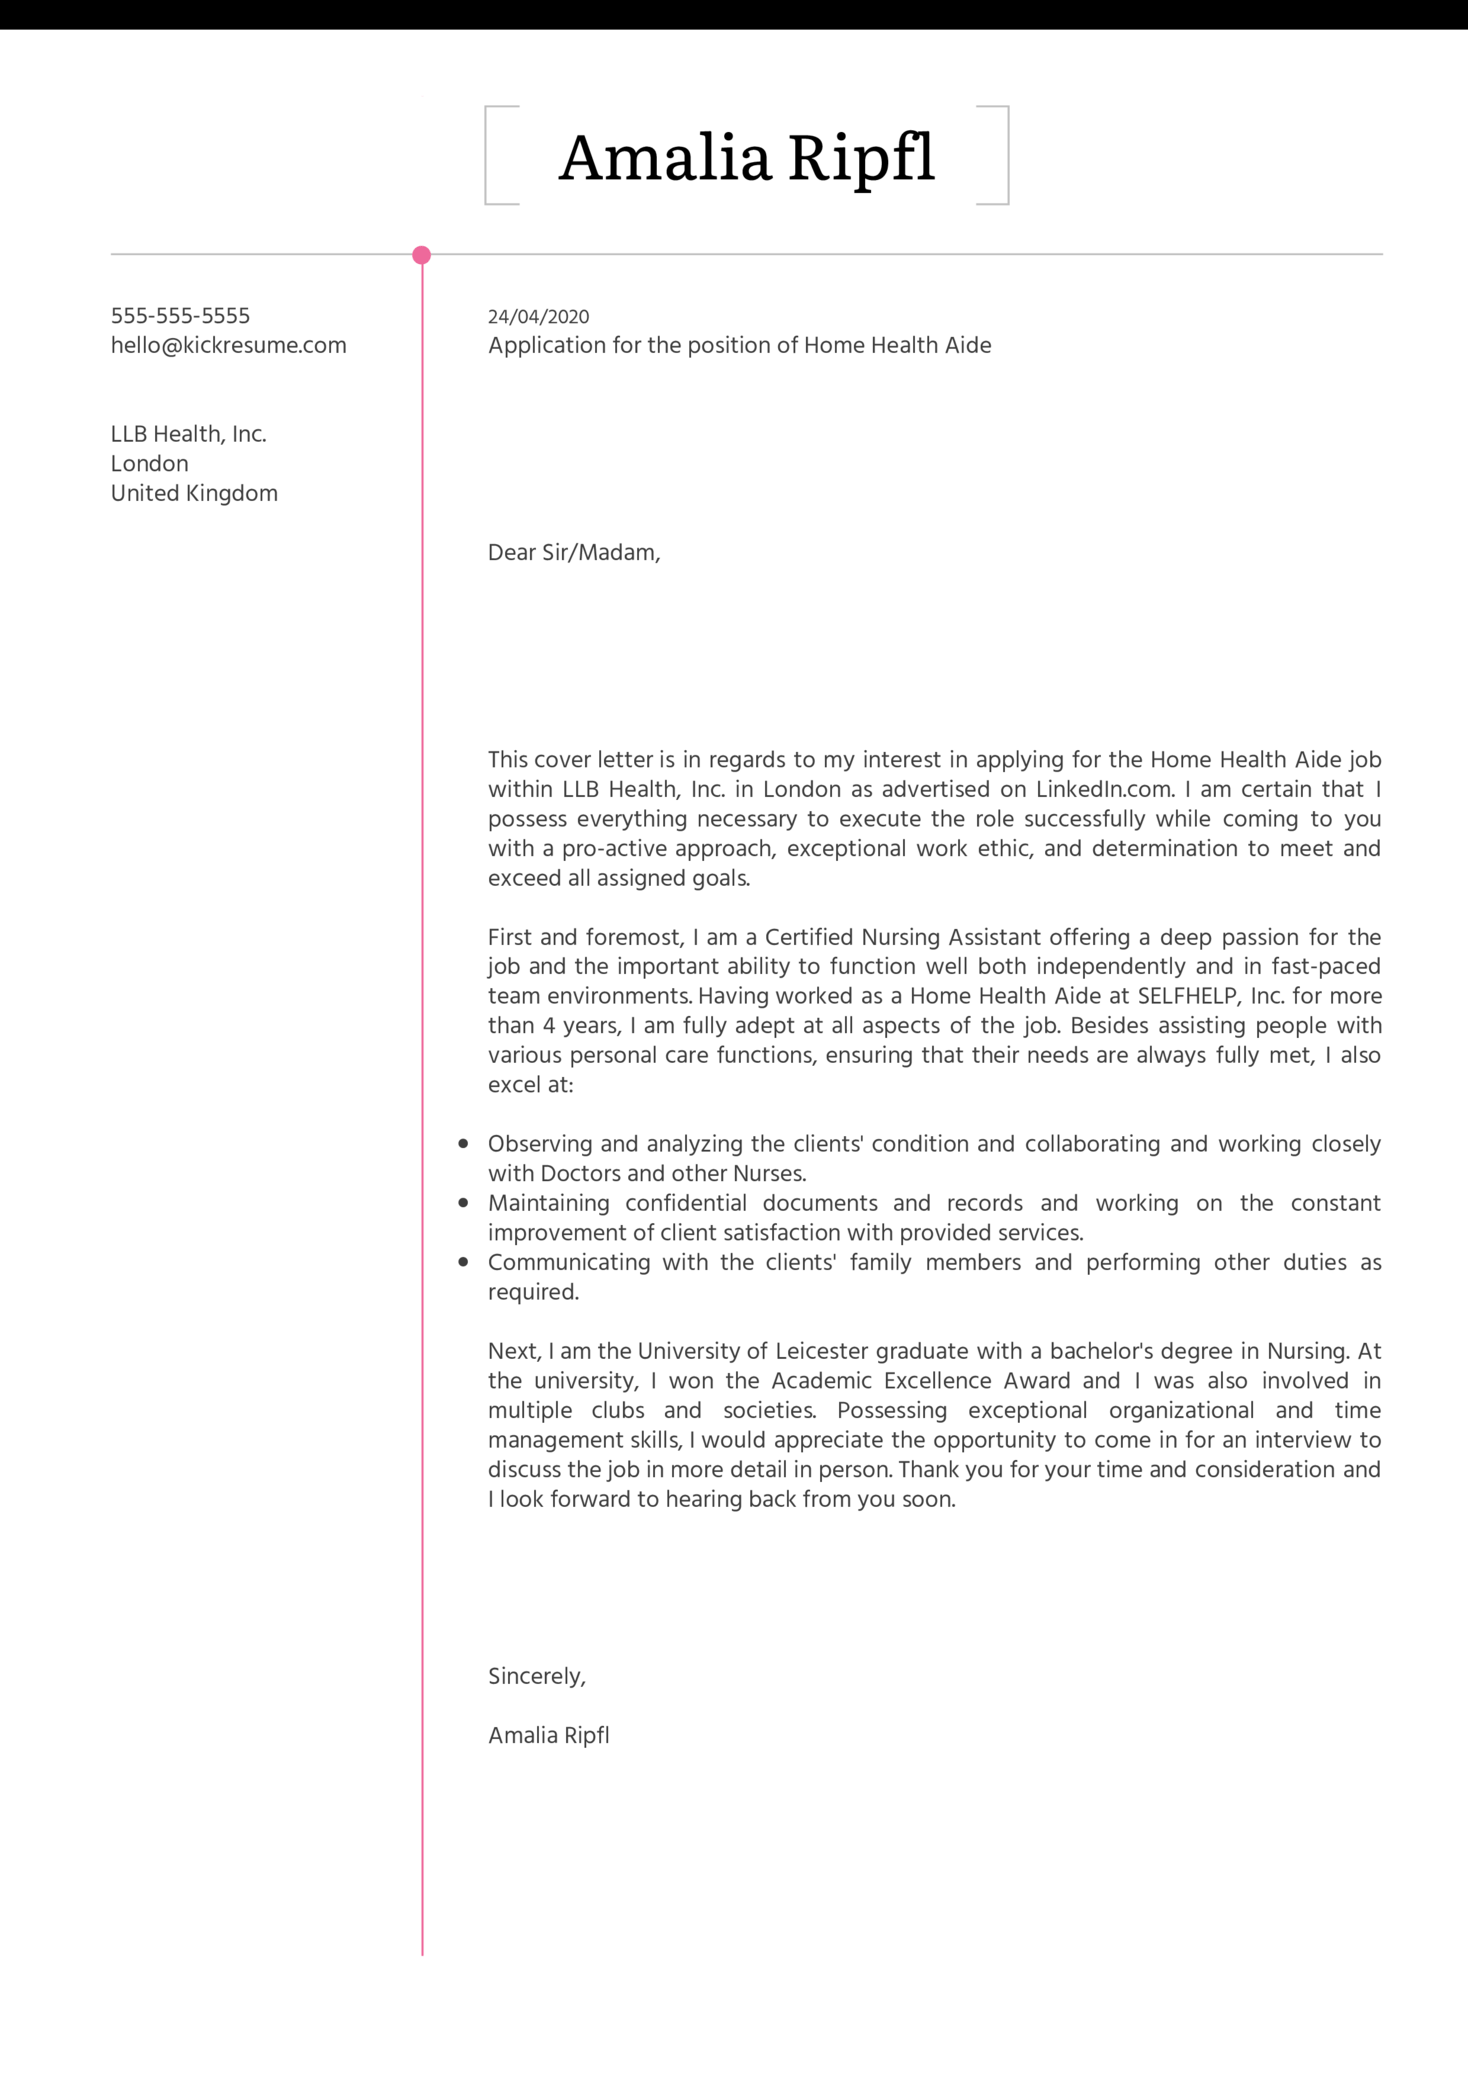 Home Health Aide Cover Letter Example